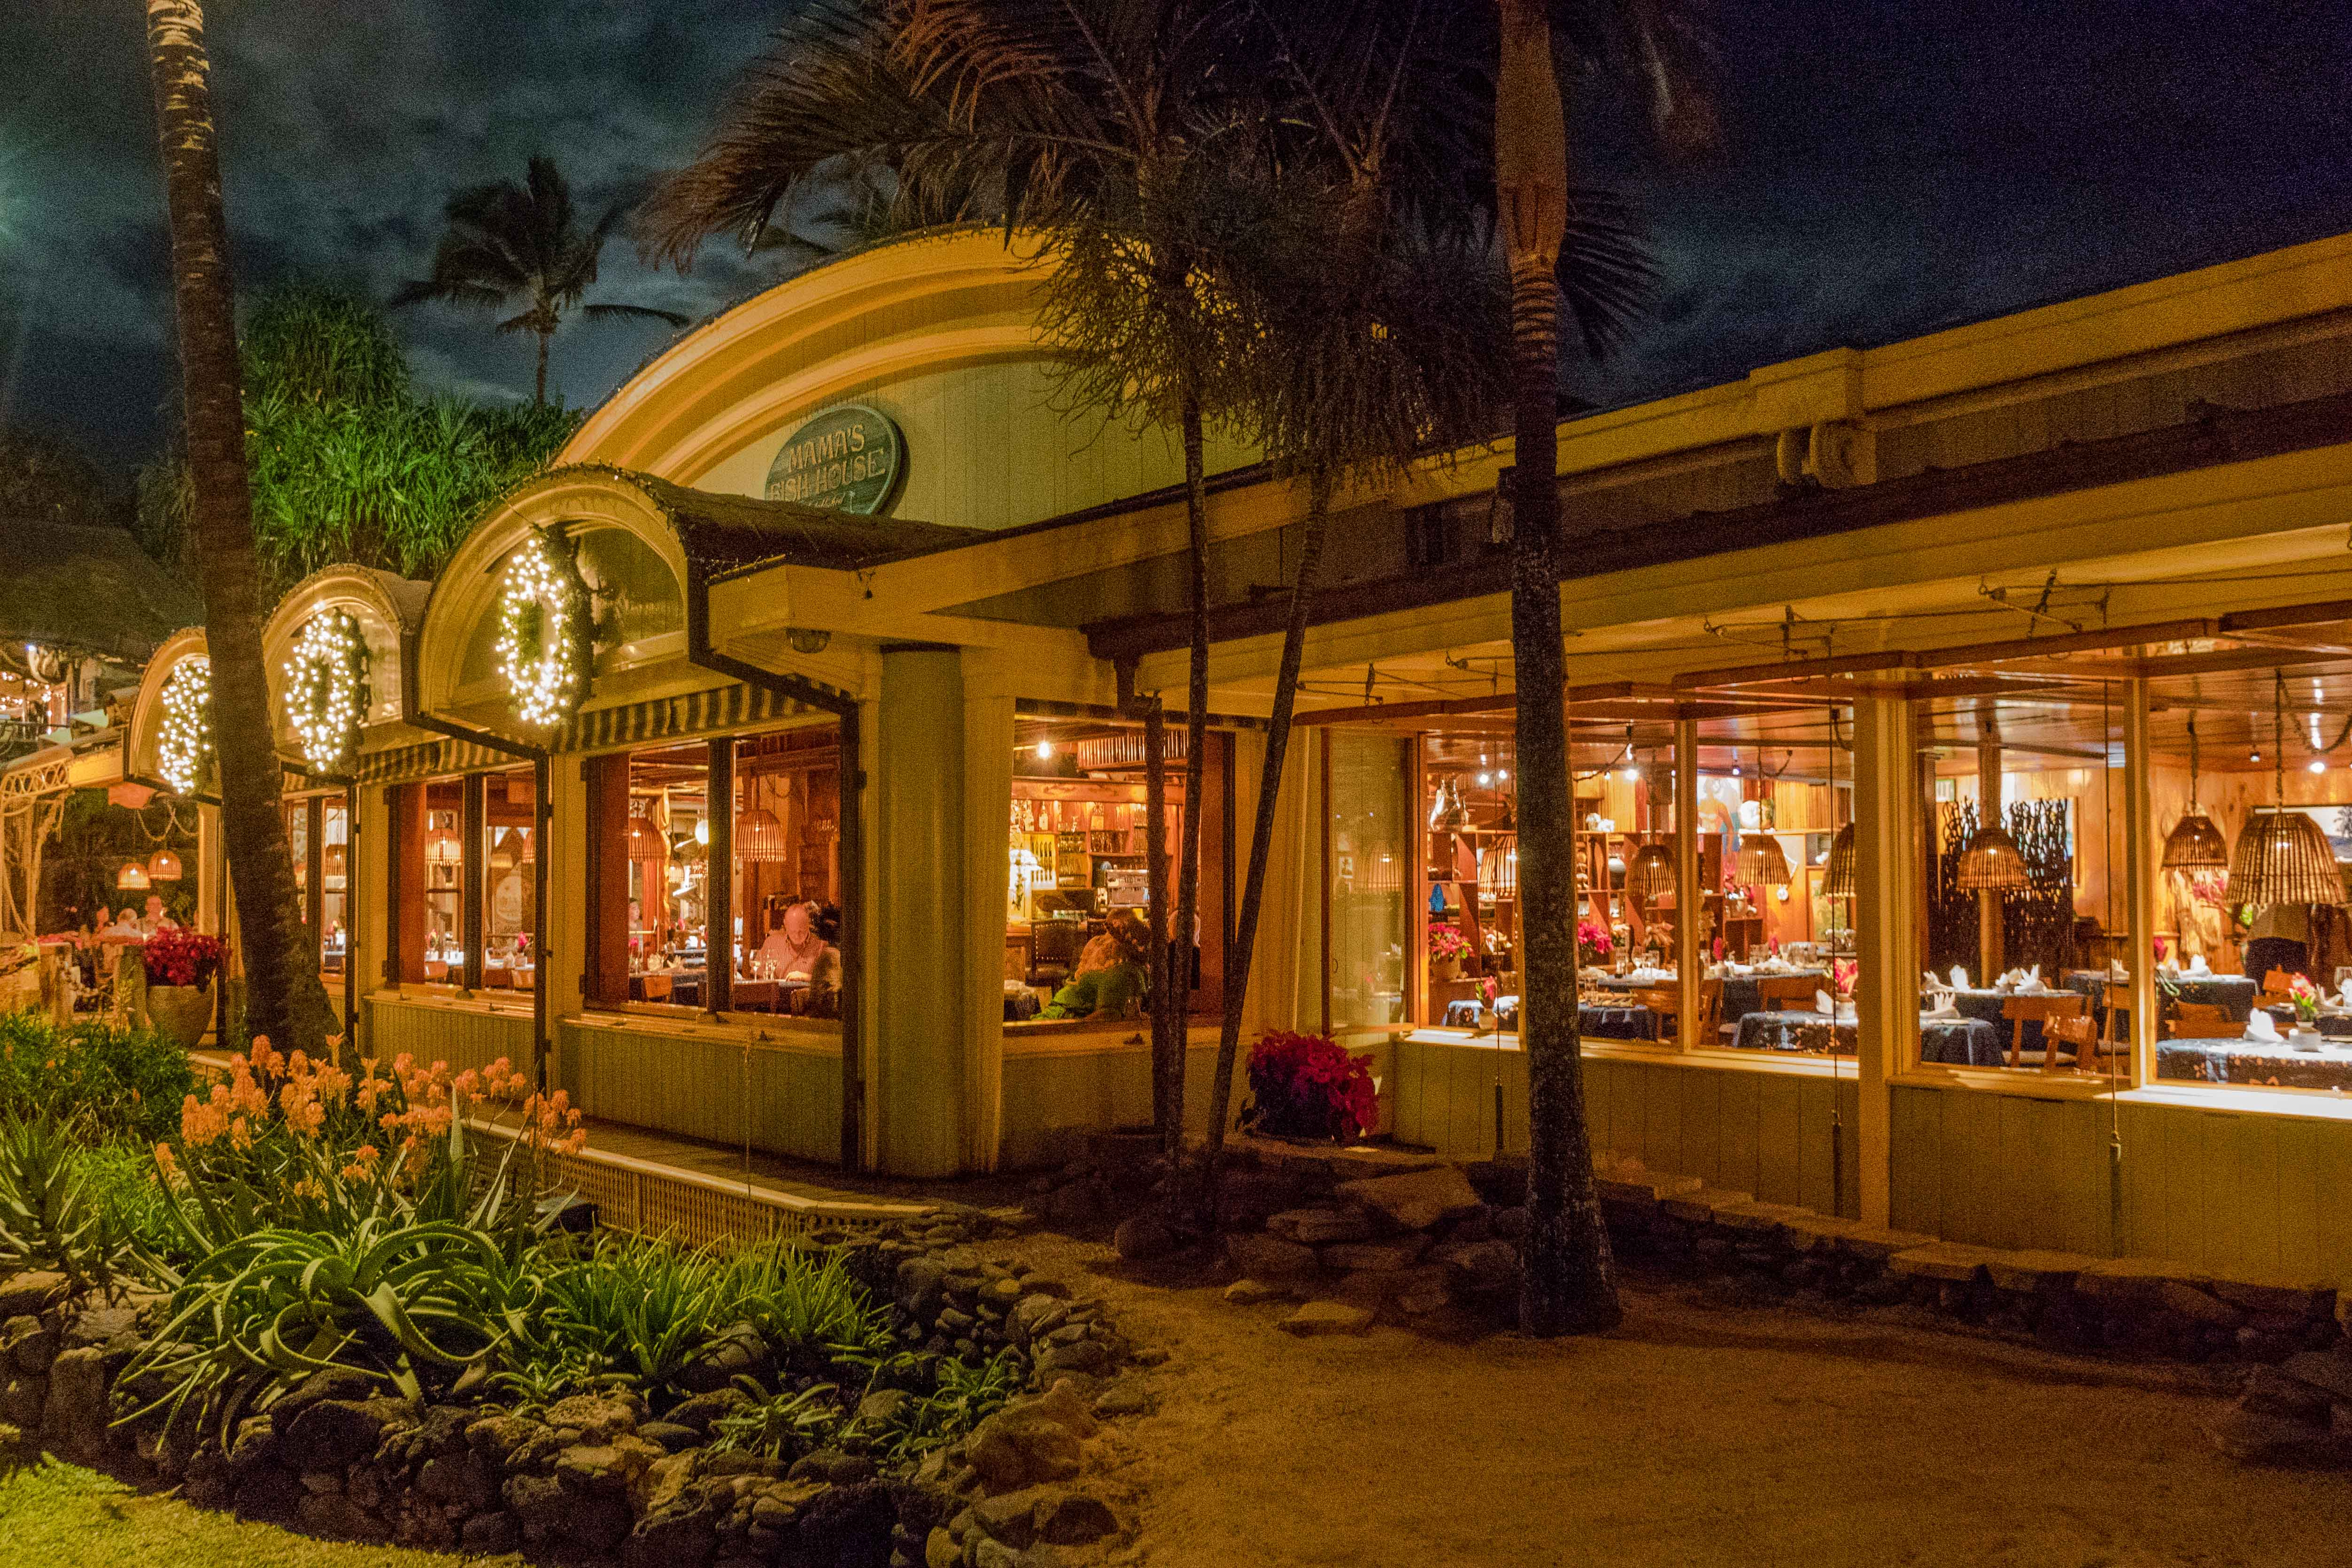 The 3 m s our most memorable meals in hawaii kan walk for Mamas fish house maui menu